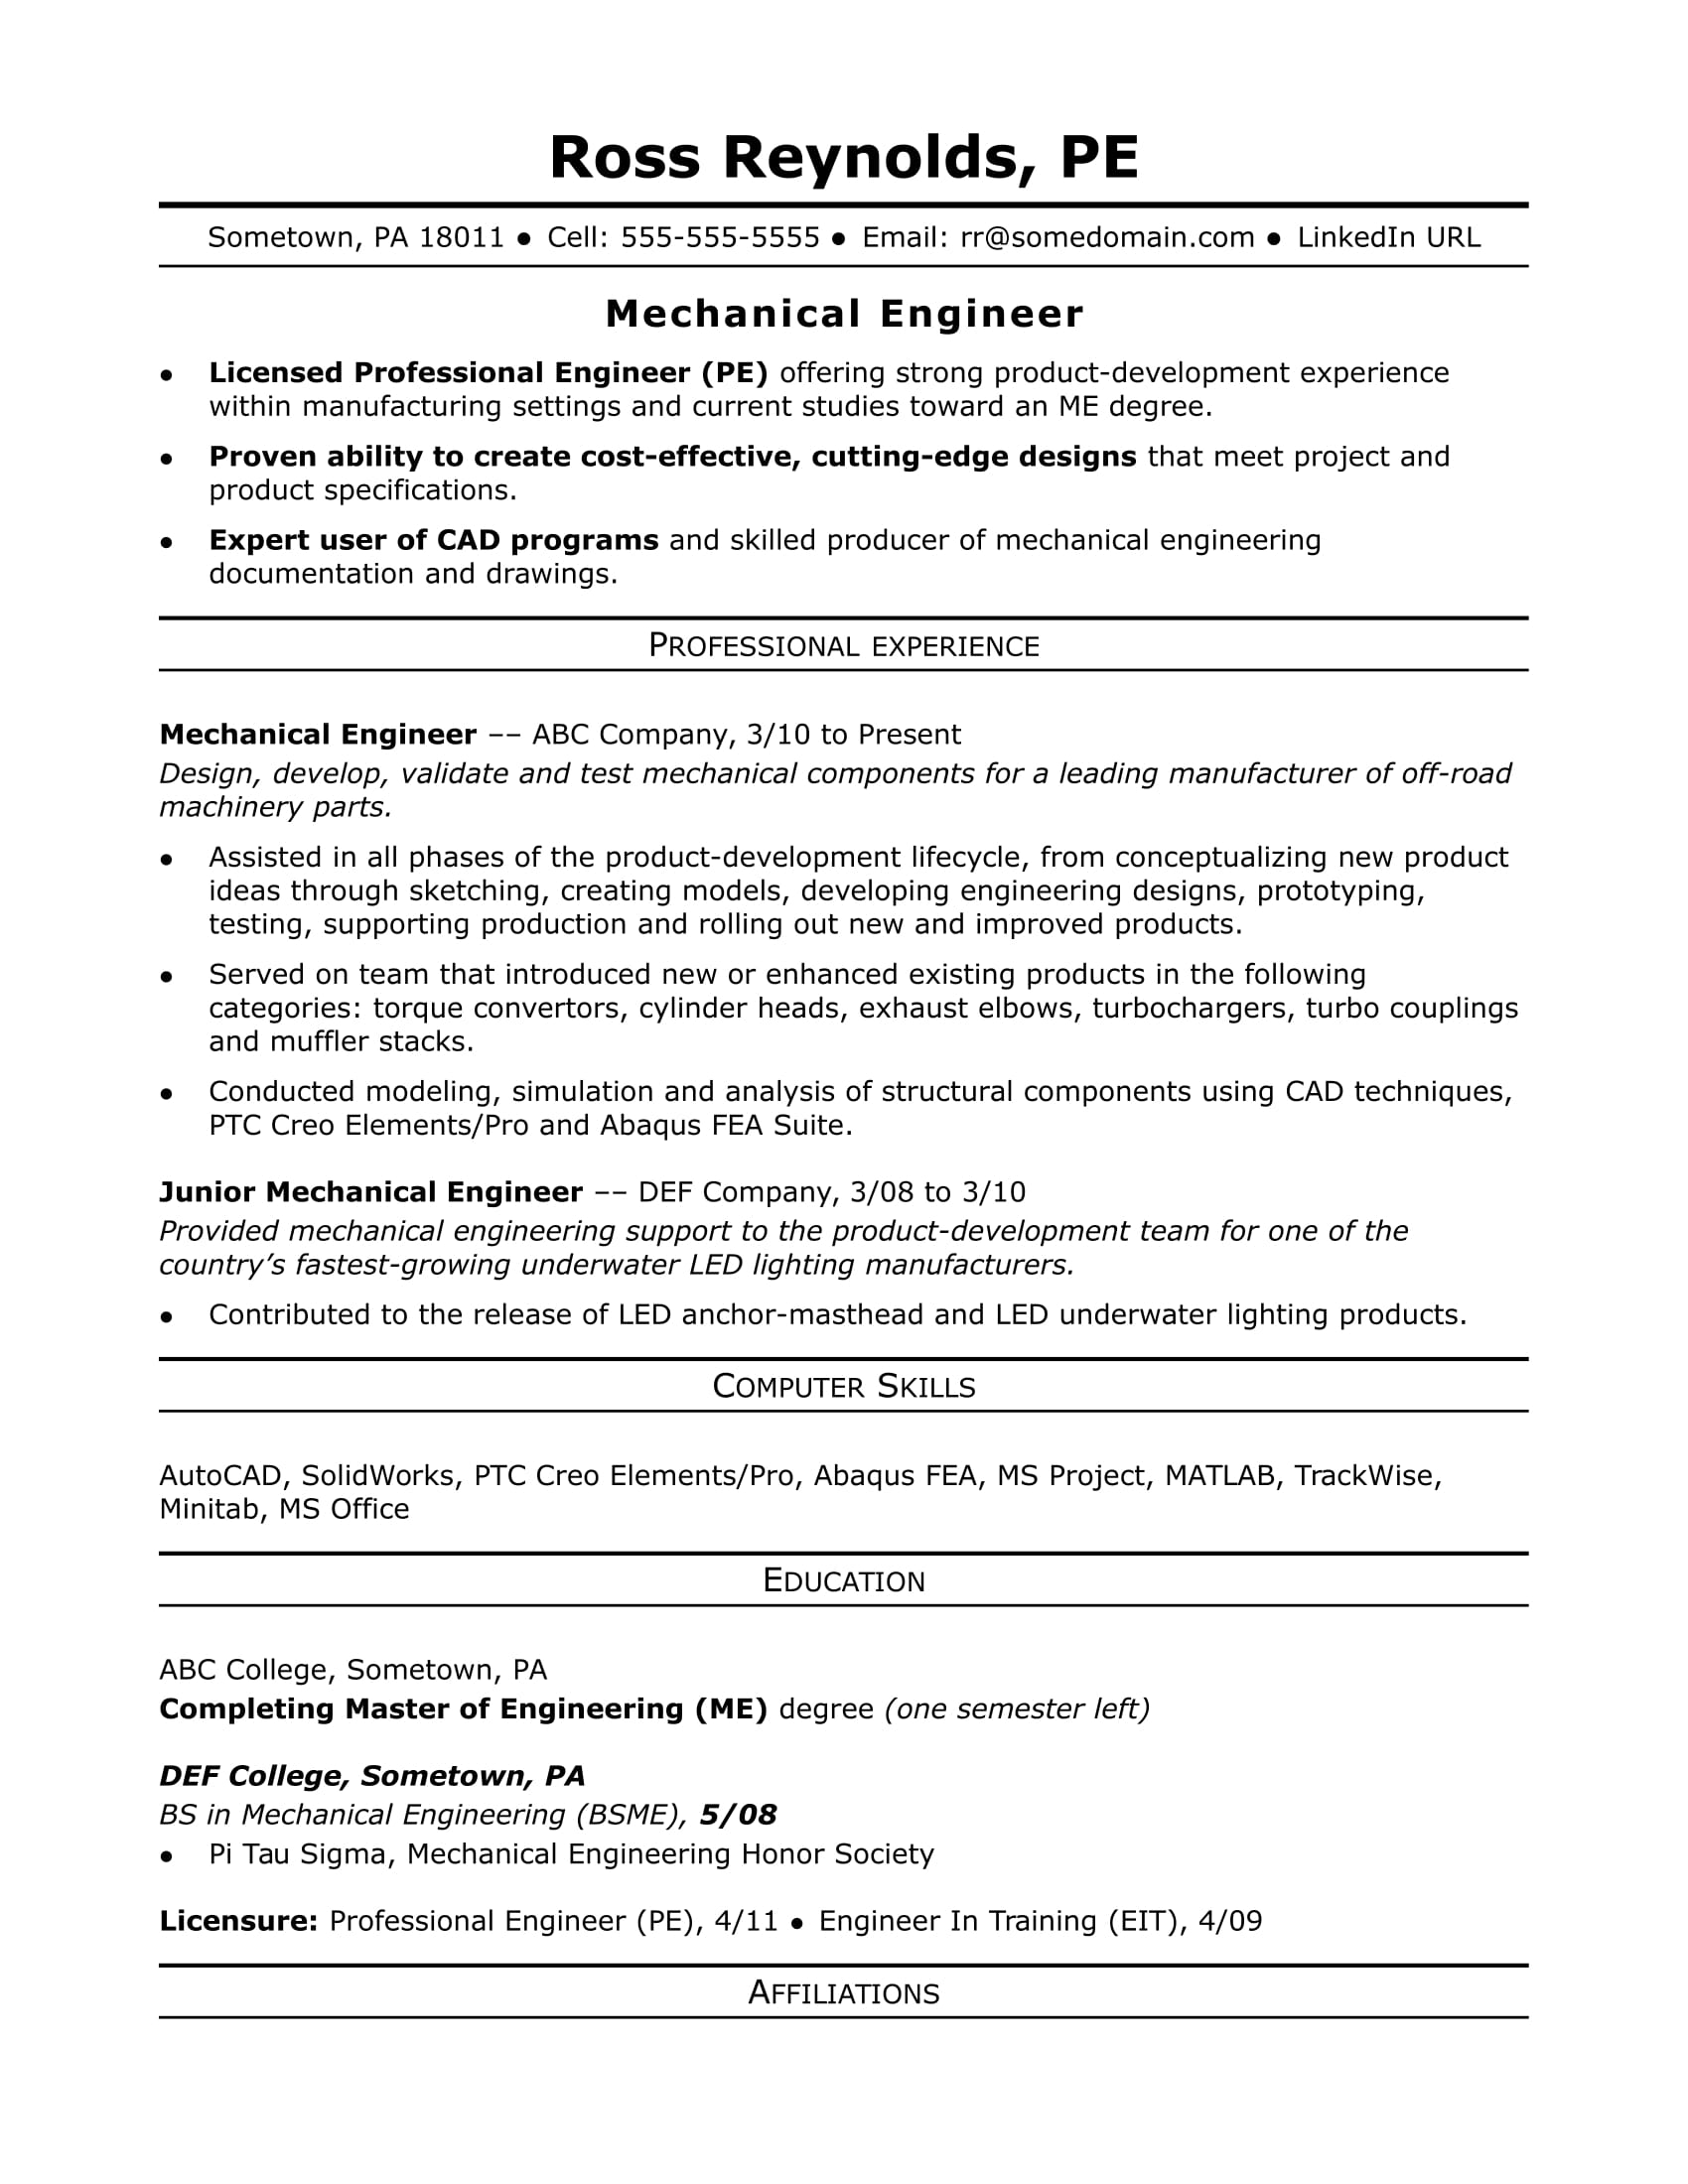 Sample Resume For A Midlevel Mechanical Engineer  Resume Examples For Engineers